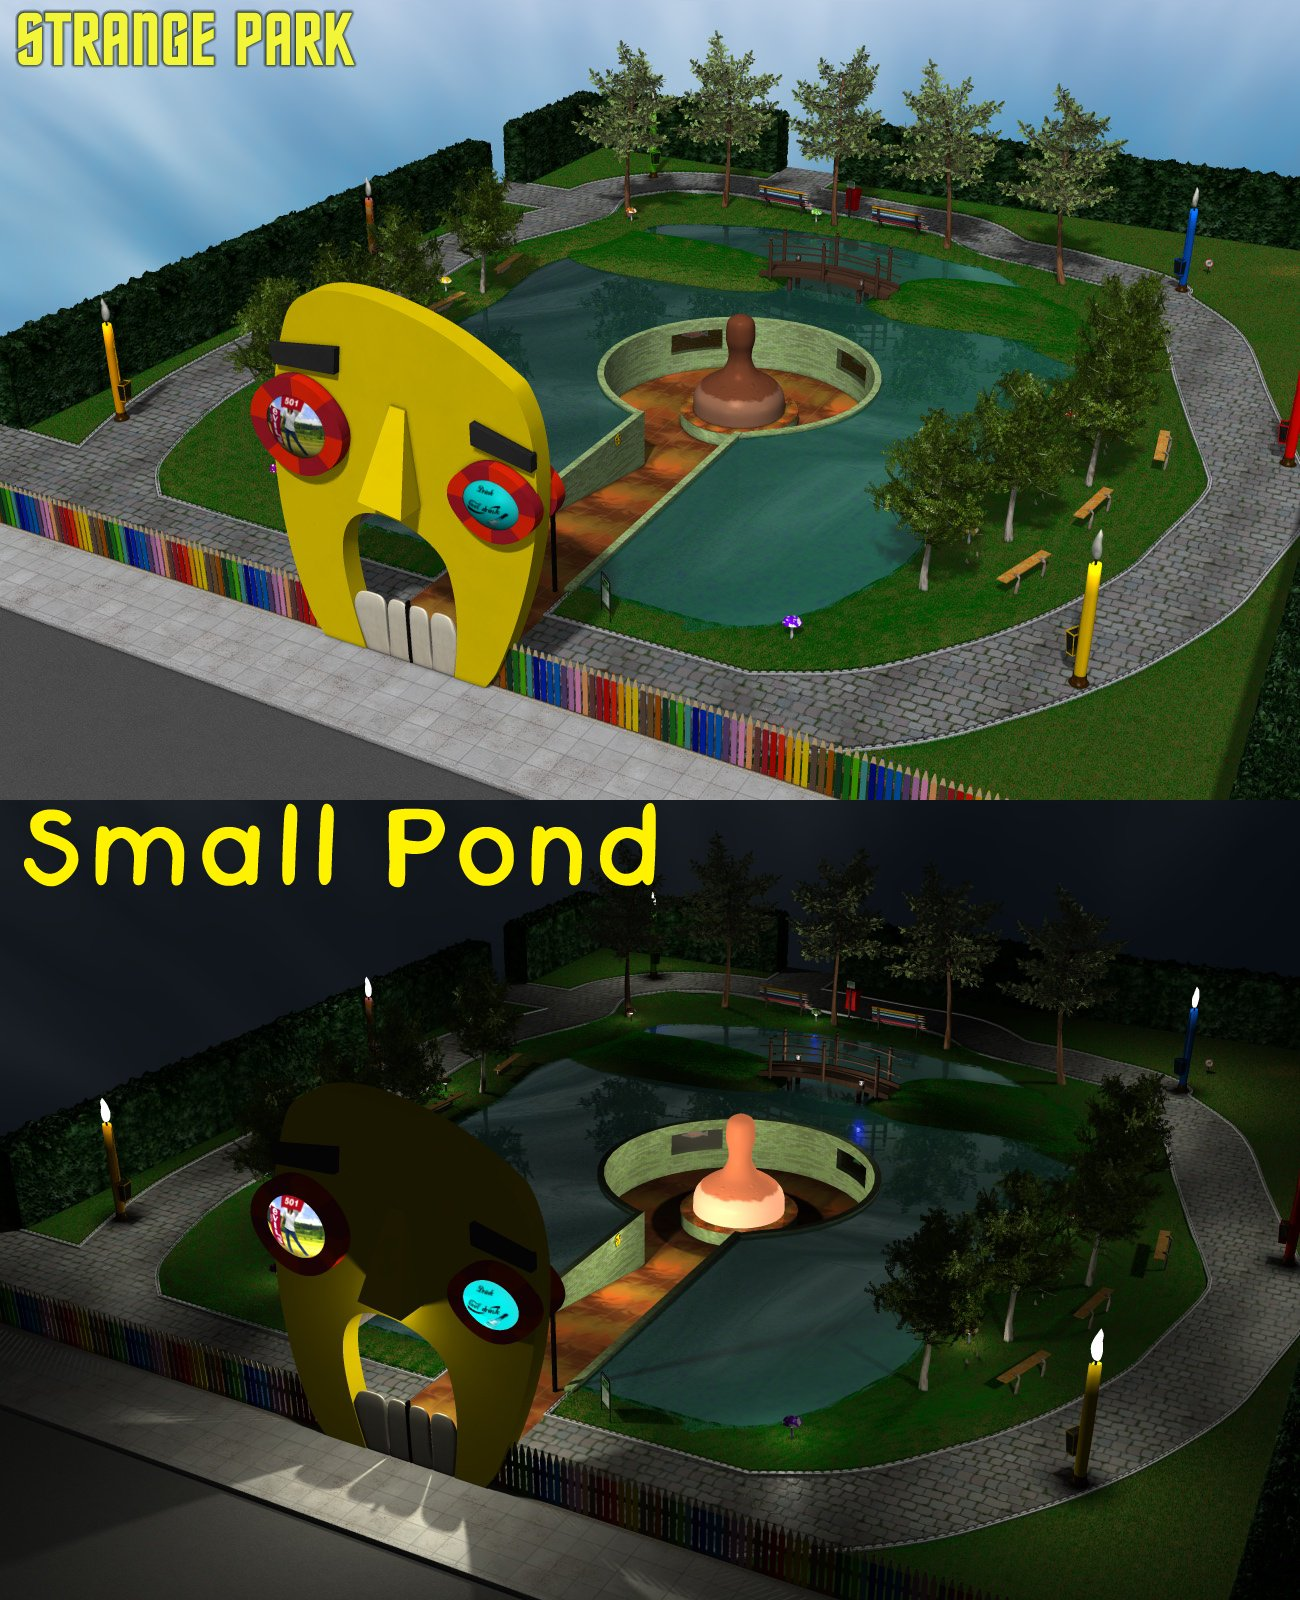 Strange Park - Small Pond - Extended License